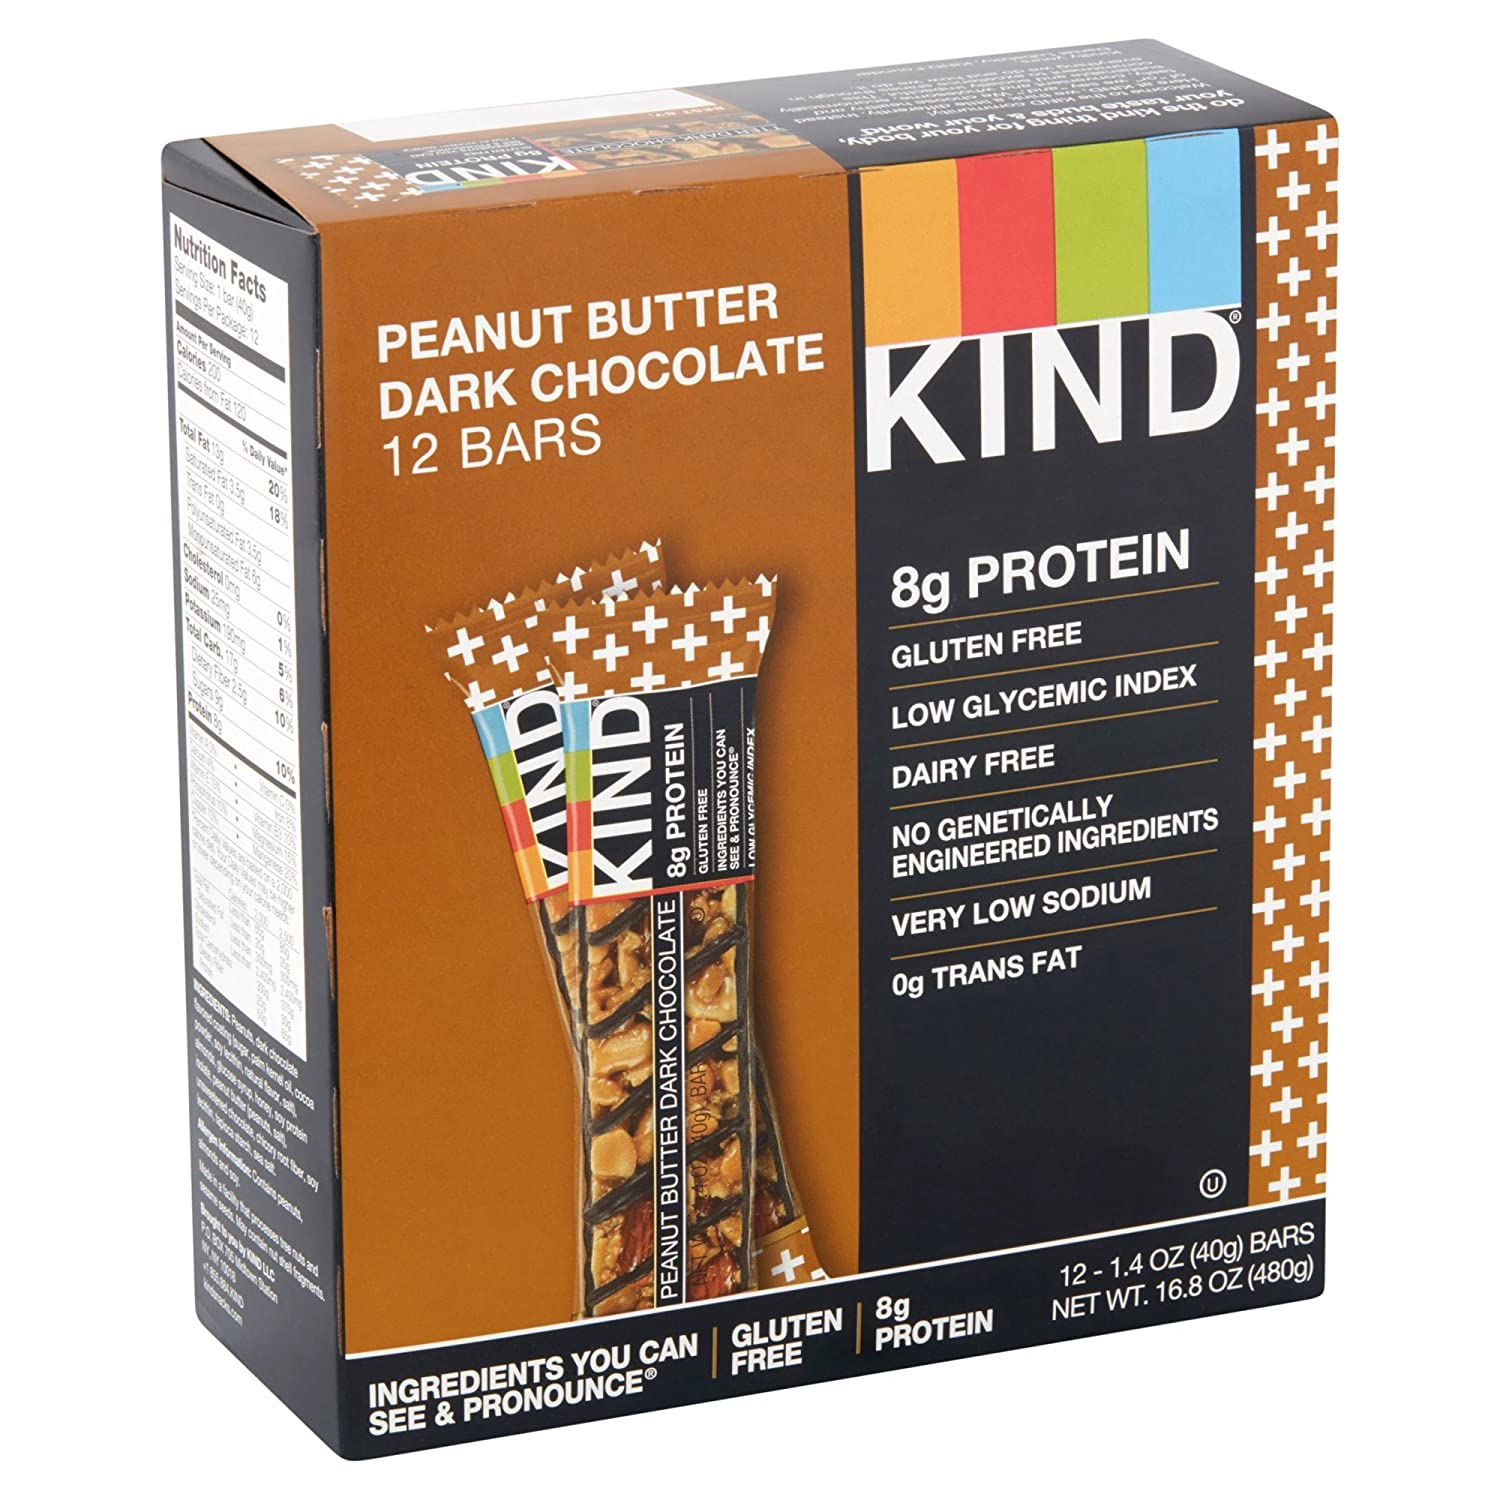 Amazon.com : KIND Bars, Peanut Butter Dark Chocolate, 8g Protein, Gluten Free, 1.4 Ounce Bars, 12 Count (Pack of 5) : Grocery & Gourmet Food